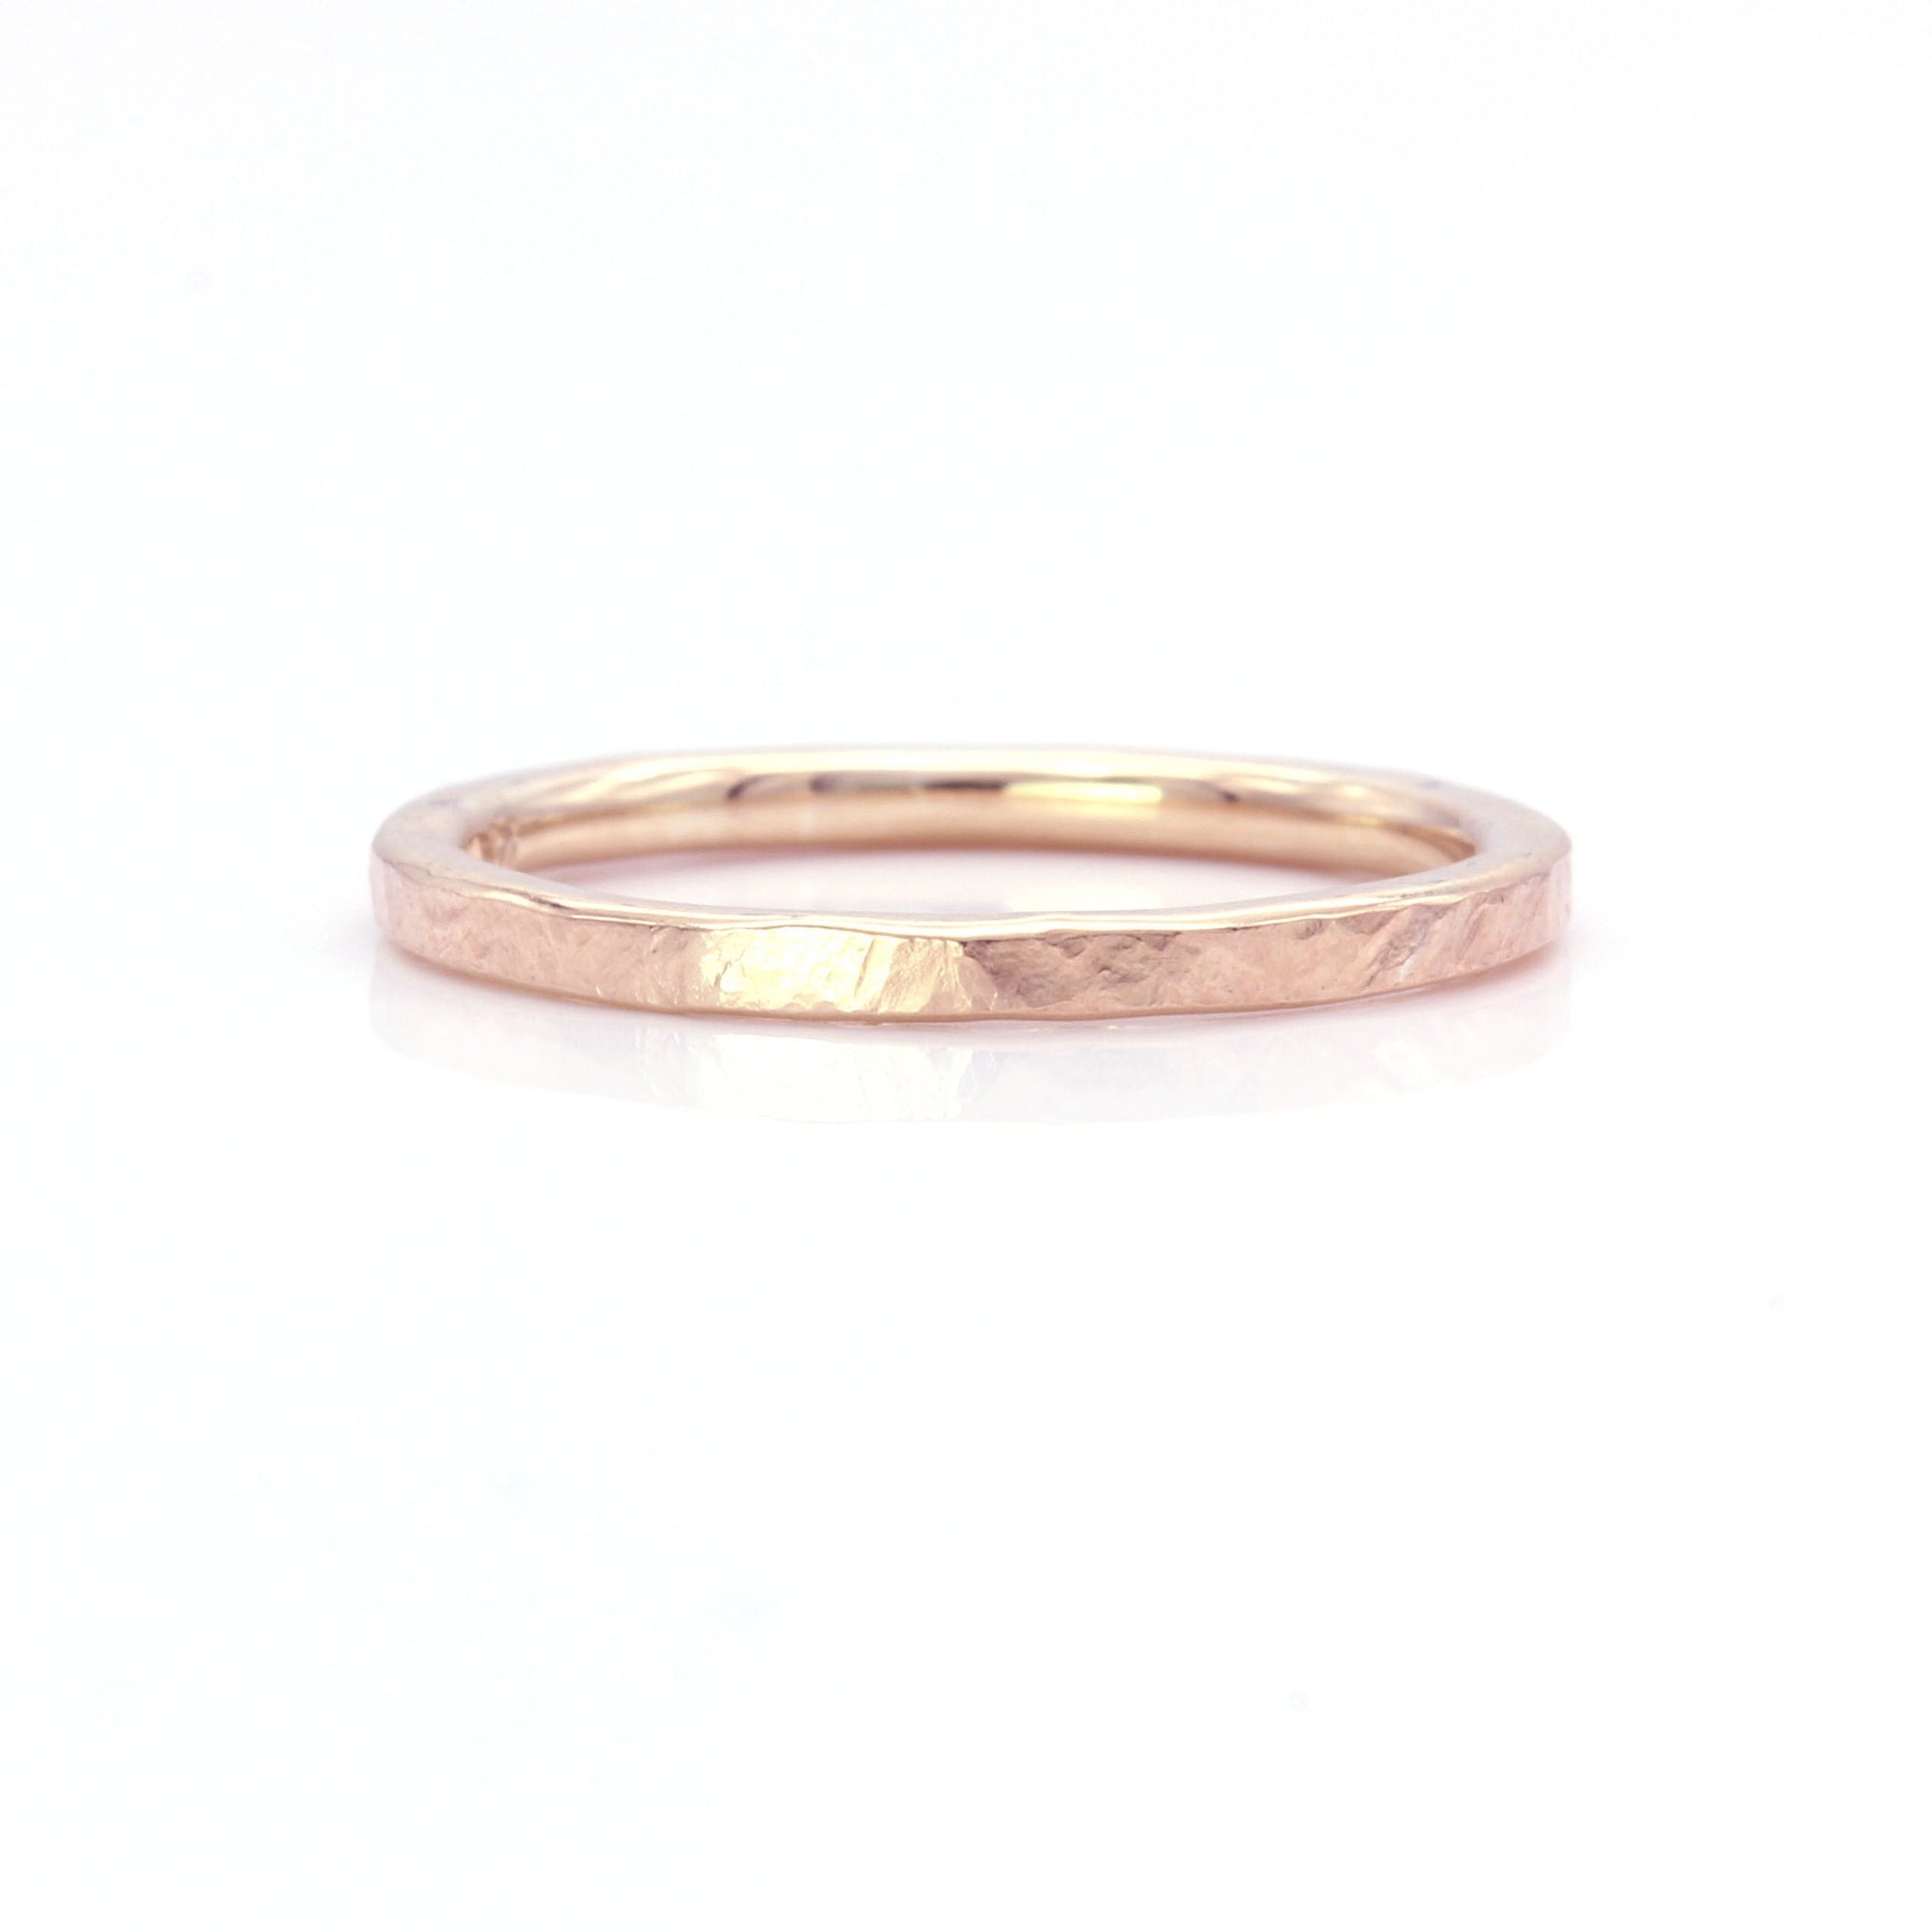 Organic Silk Textured Band | 2mm Wide | Rose Gold